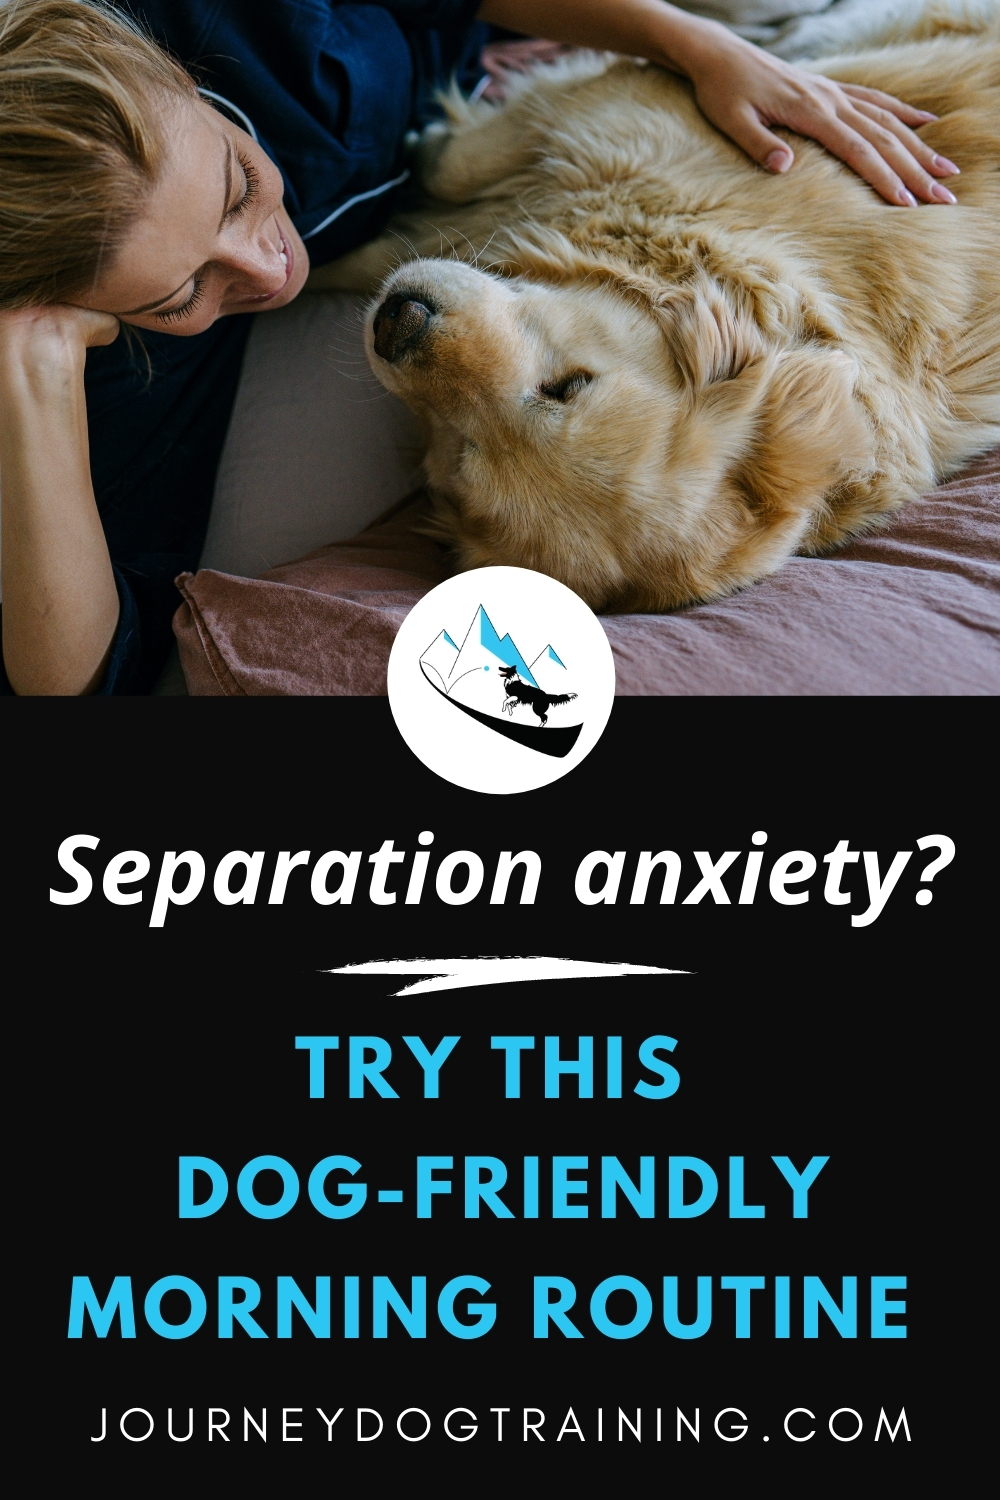 try this dog-friendly morning routine for dogs with separation anxiety | journeydogtraining.com